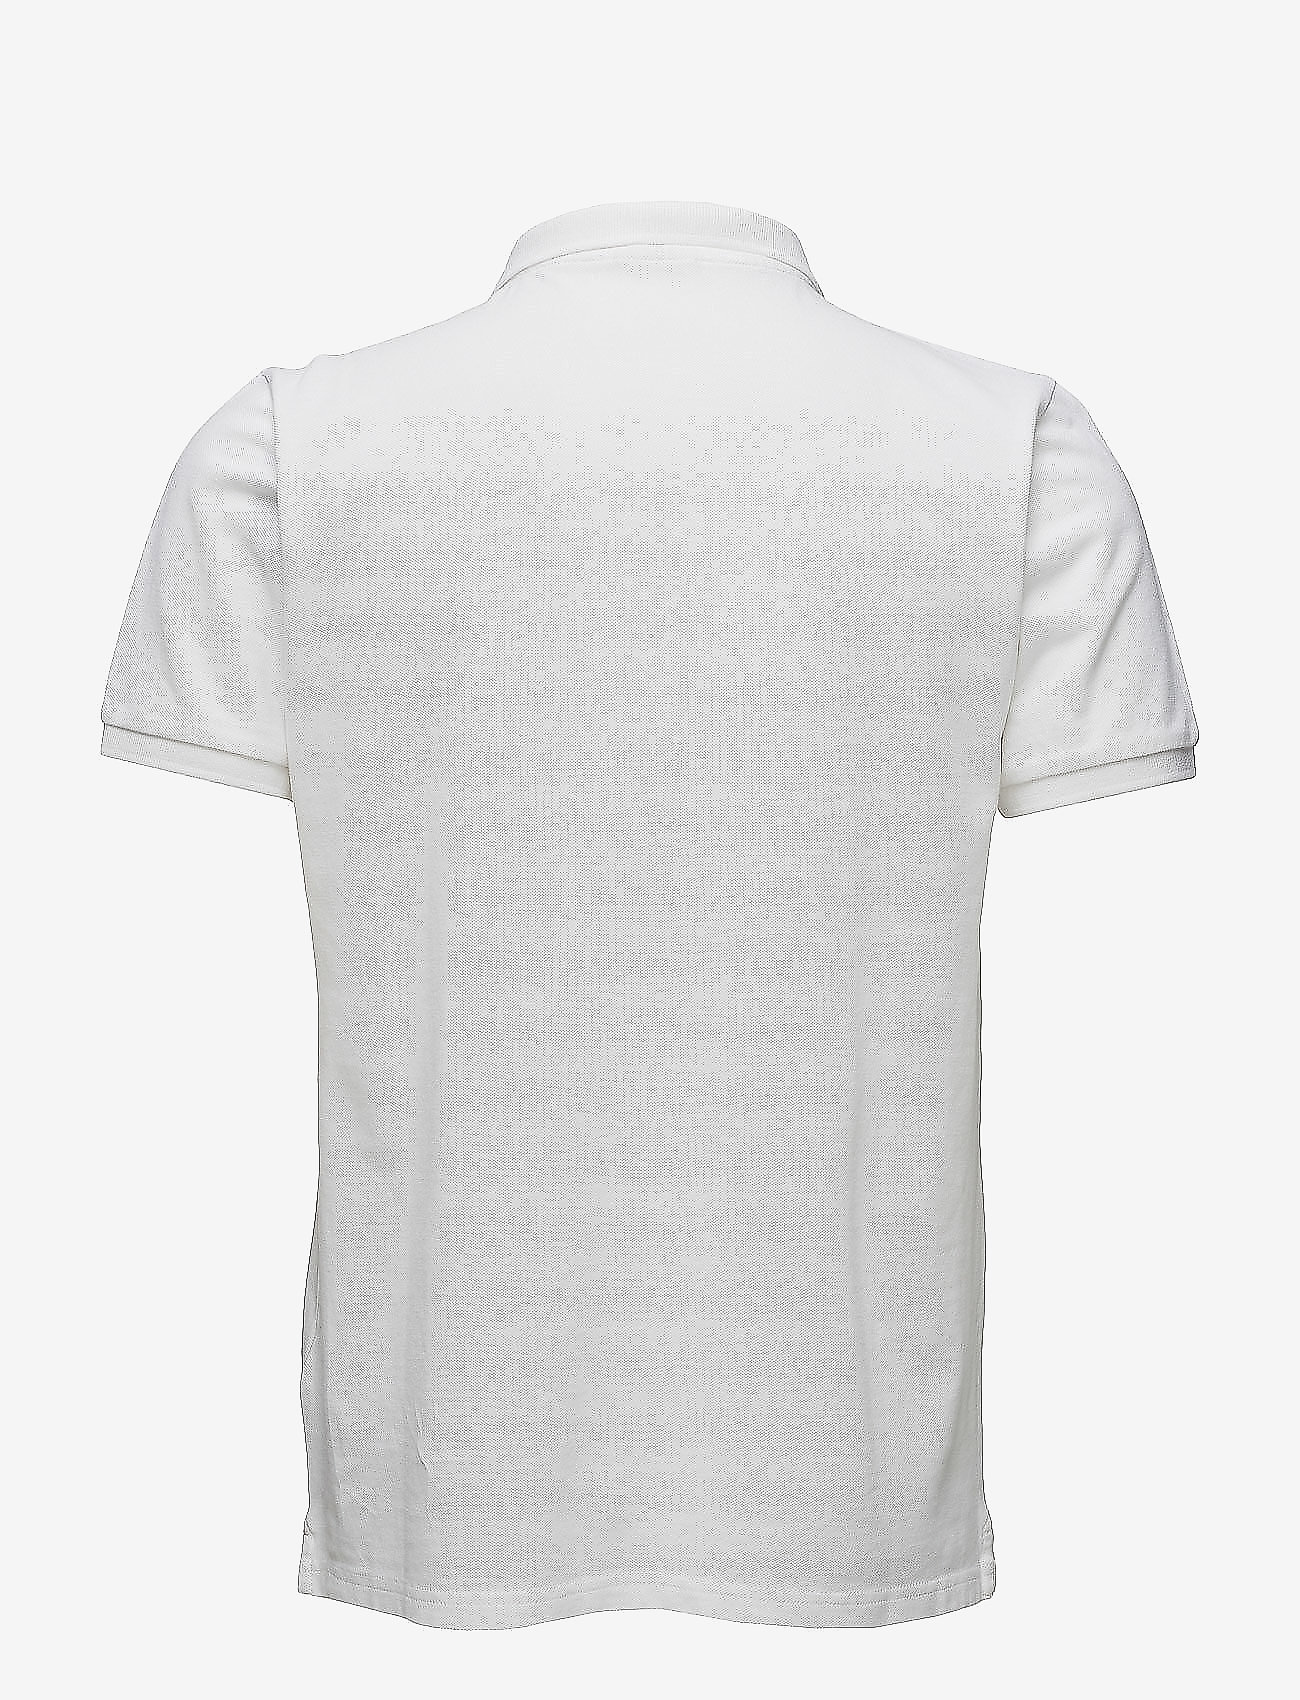 Knowledge Cotton Apparel - Pique Polo -  GOTS/Vegan - kortärmade pikéer - bright white - 1